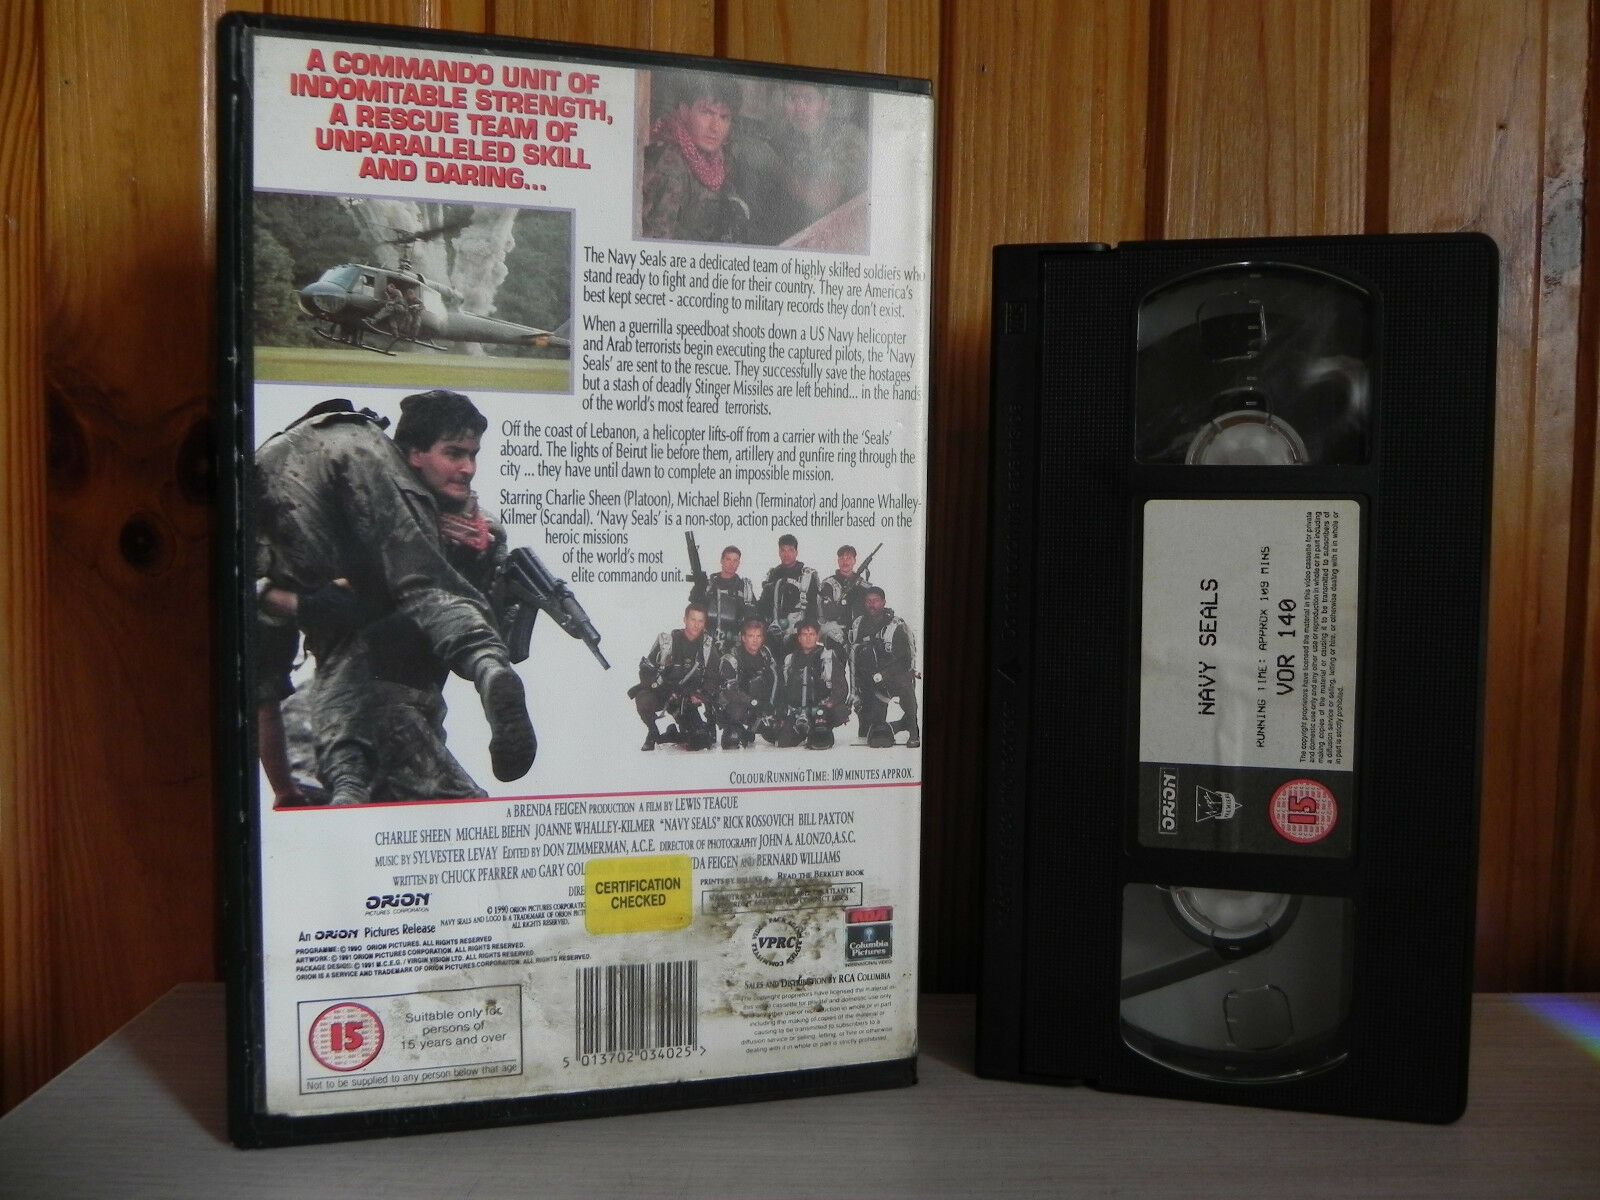 Navy Seals - Collectable Charlie Sheen - Action Virgin Premiere - Big Box - VHS